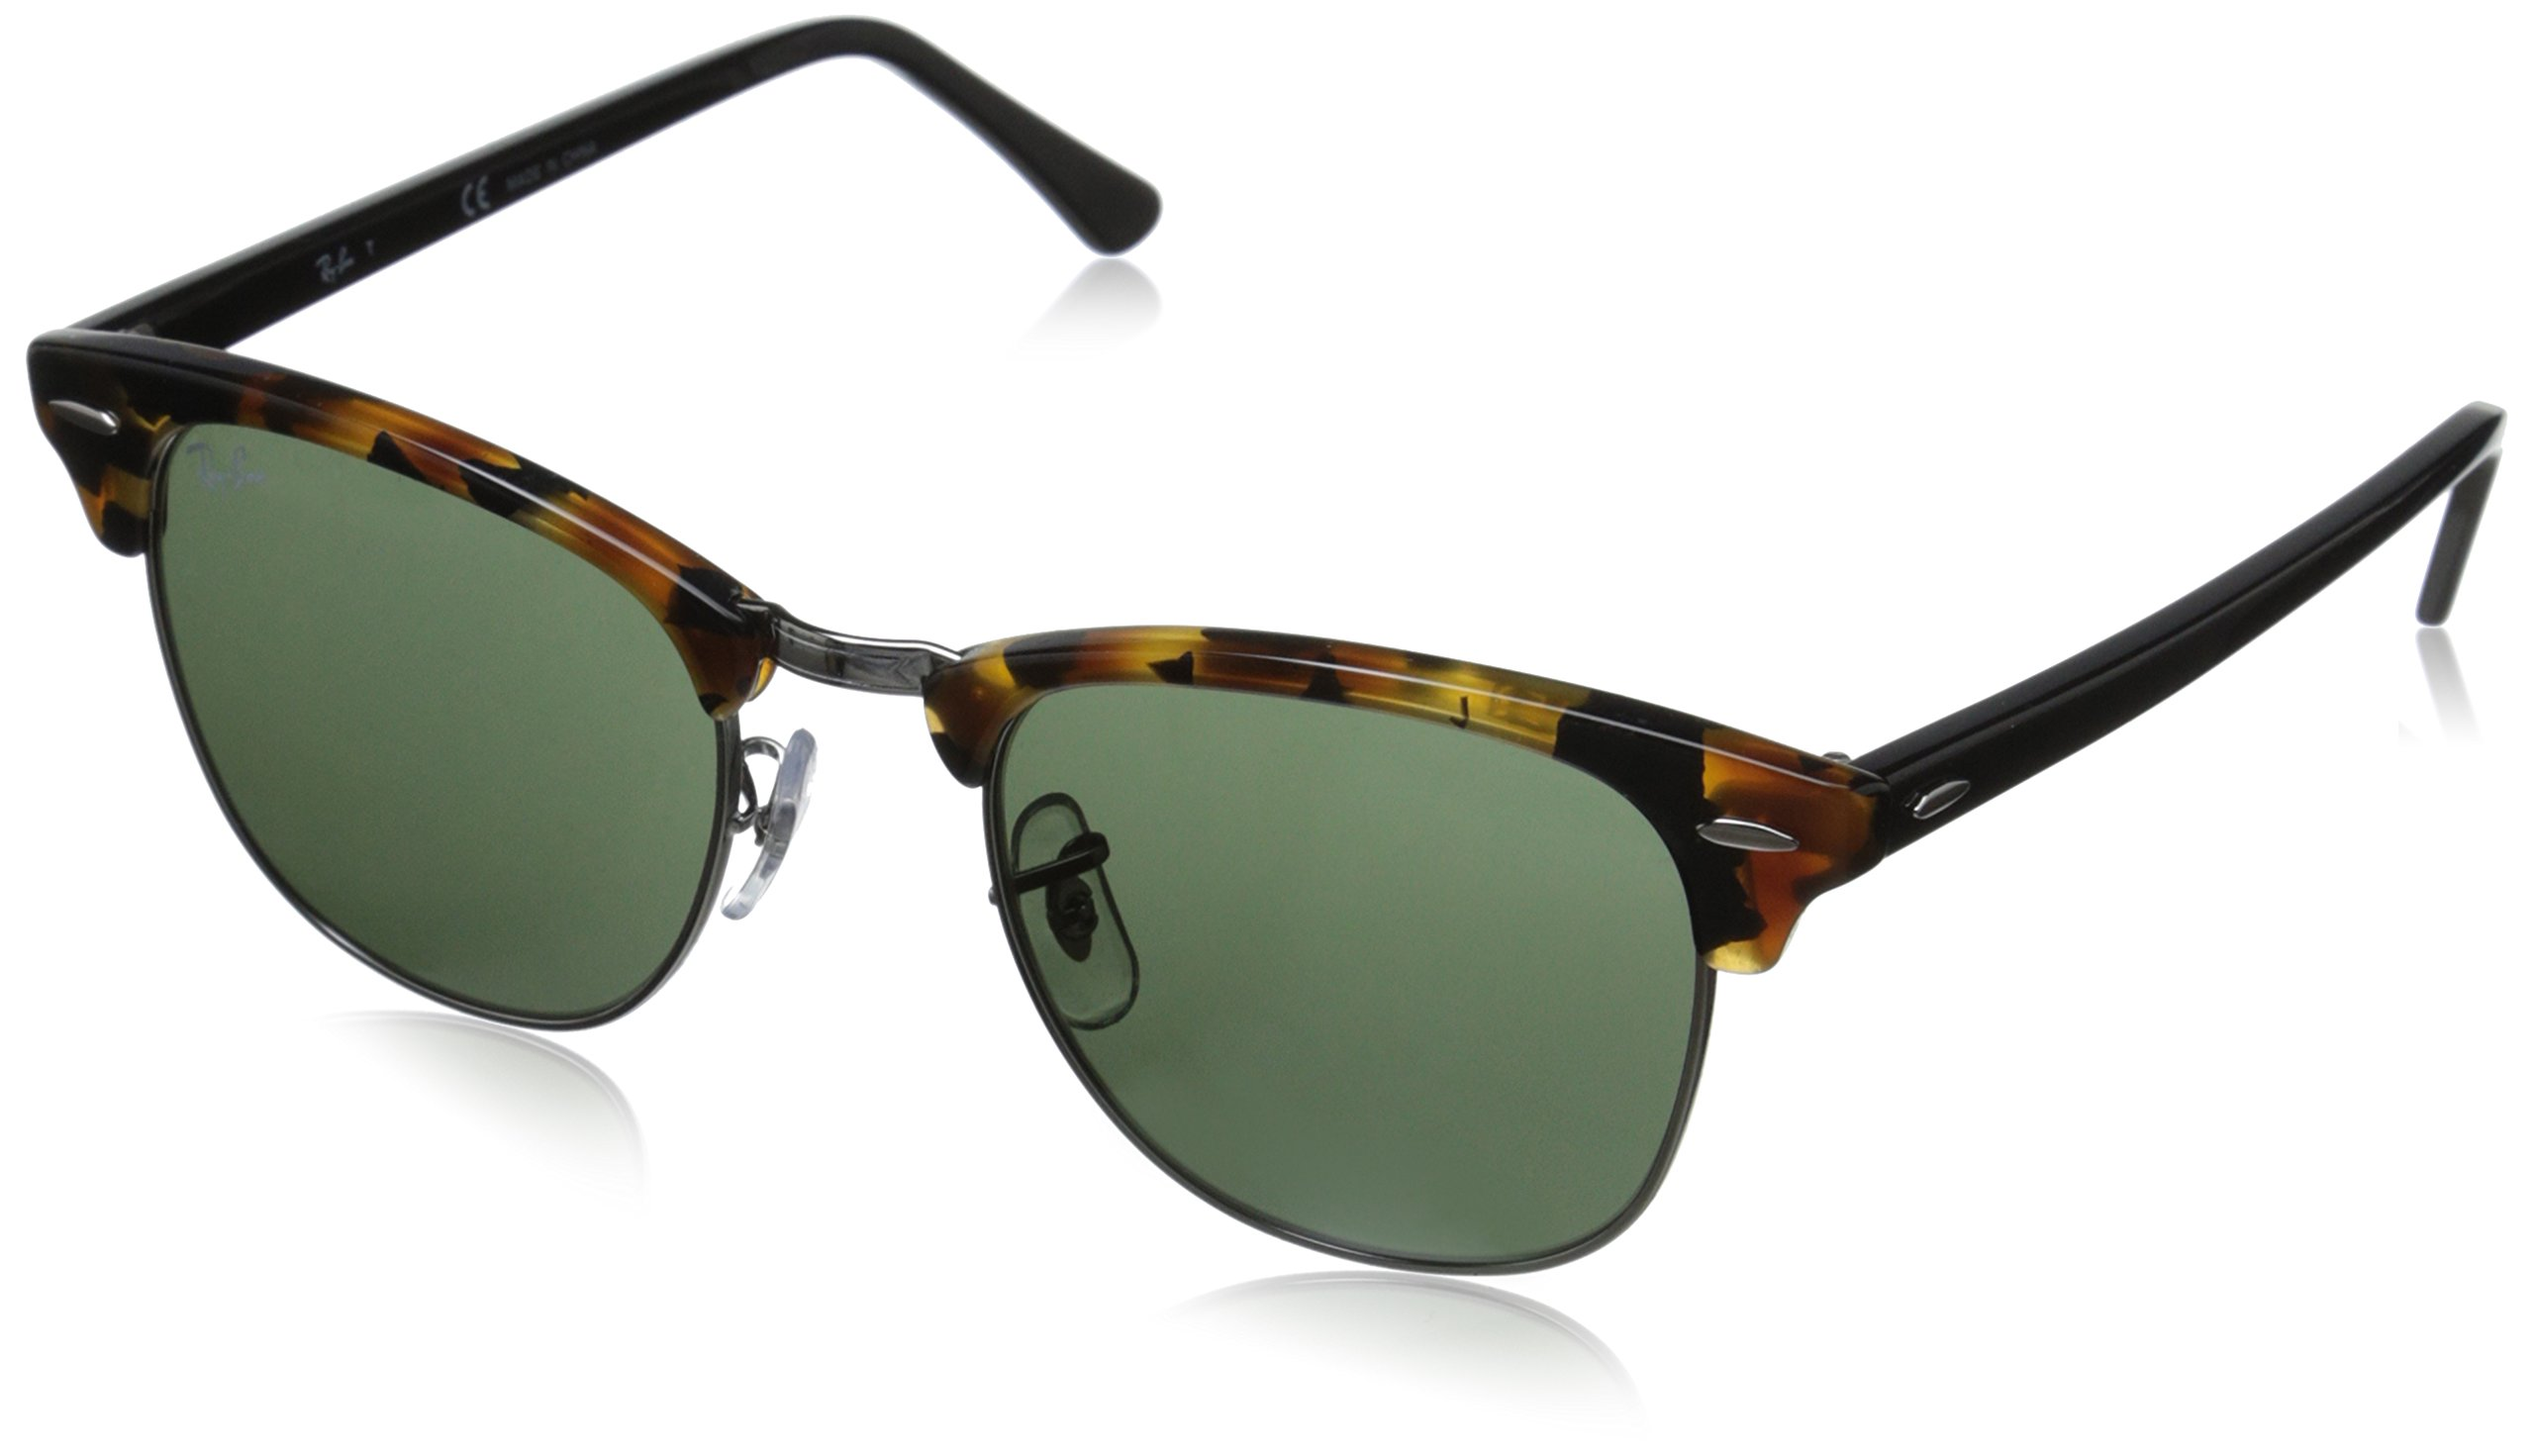 Ray-Ban RB3016 Clubmaster Square Sunglasses, Spotted Black Tortoise/Green, 51 mm by Ray-Ban